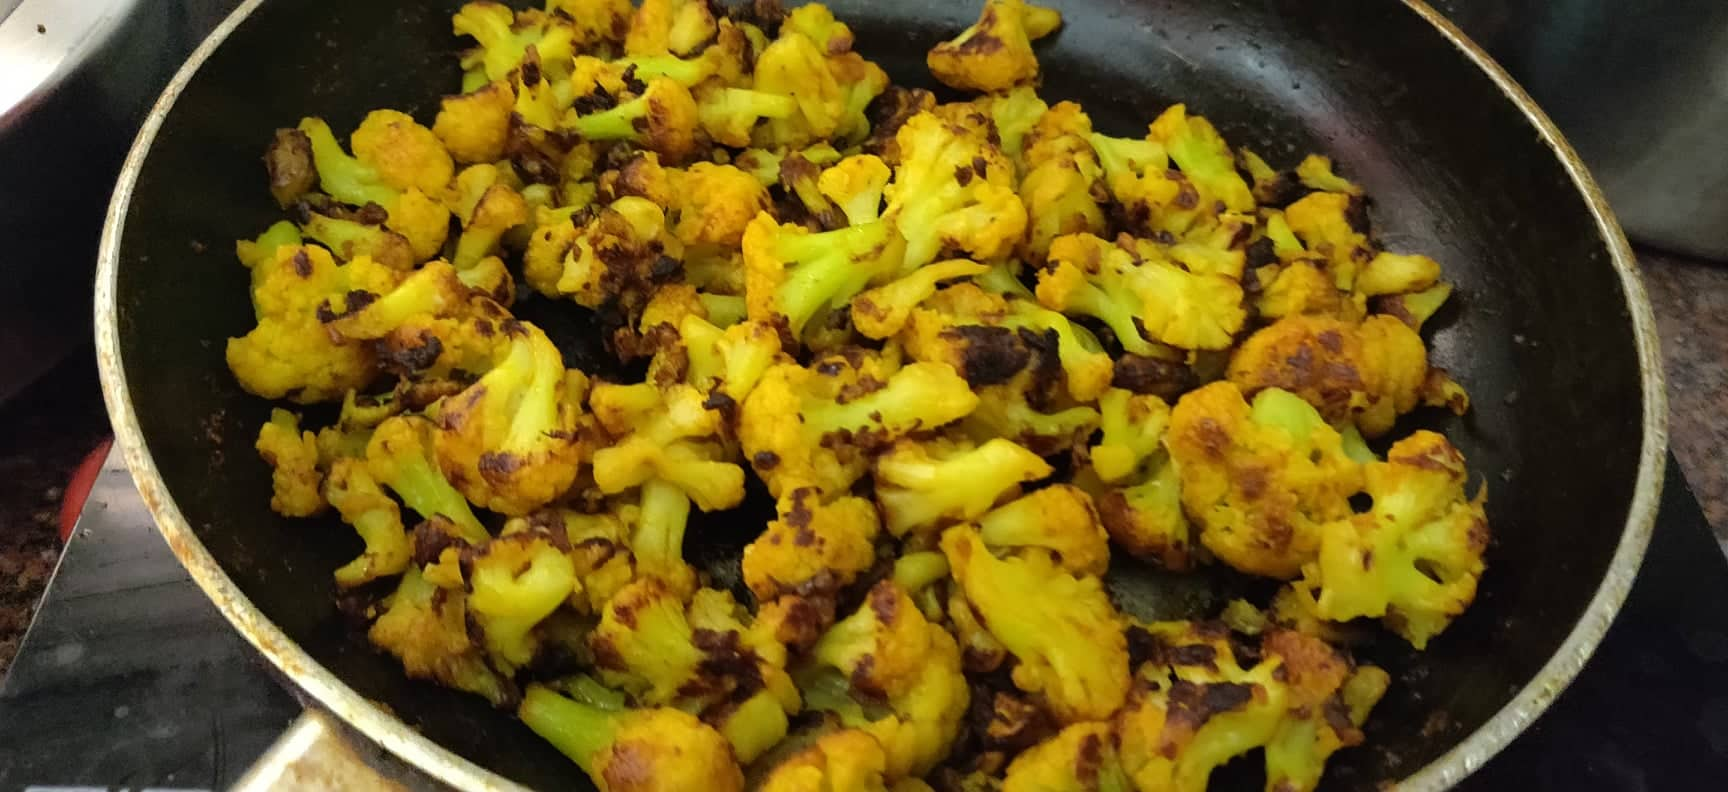 cauliflower_stir_fry - 84779170_196114158448100_4227307310386511872_n